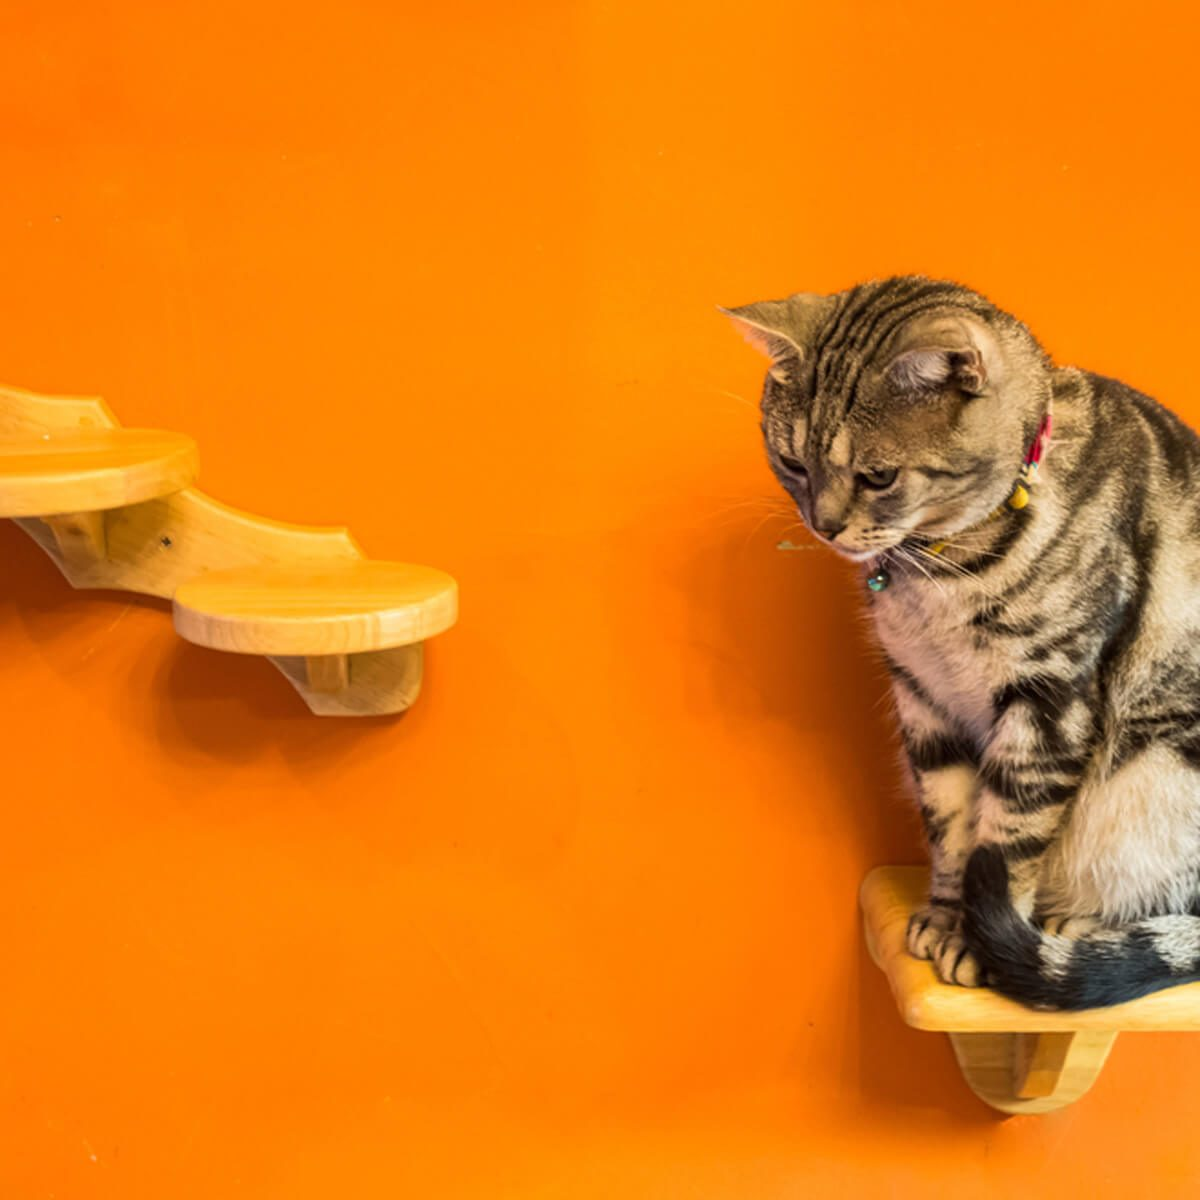 Stupendous 11 Awesome Ideas For Diy Cat Furniture The Family Handyman Pabps2019 Chair Design Images Pabps2019Com